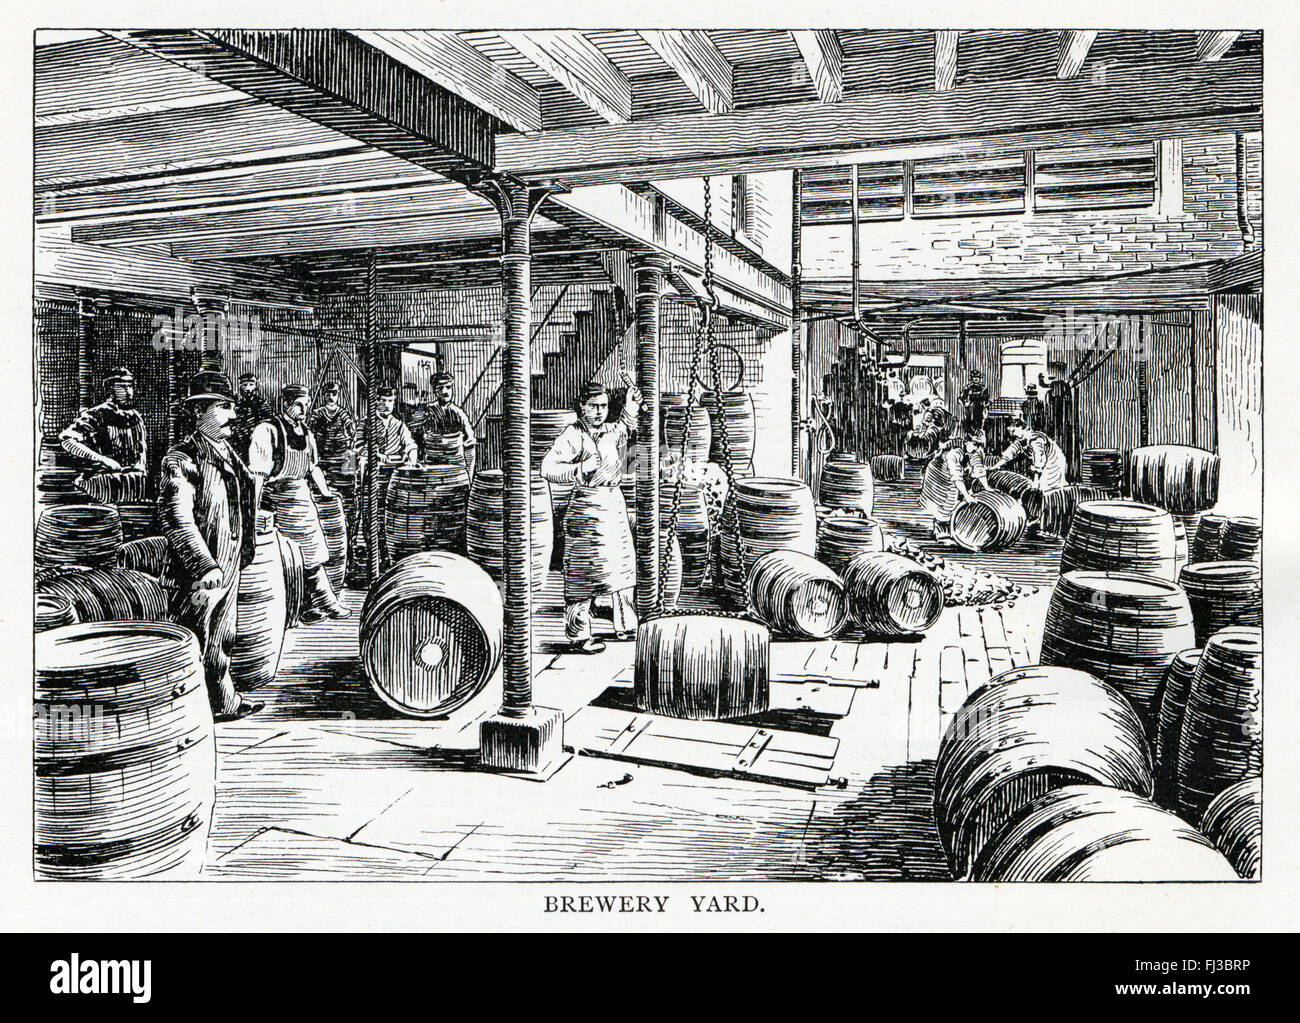 Crown Brewery, Brewery Yard, 1890 engraving of barrels of beer in the Bolton brewery of Magee and Marshall Stock Photo